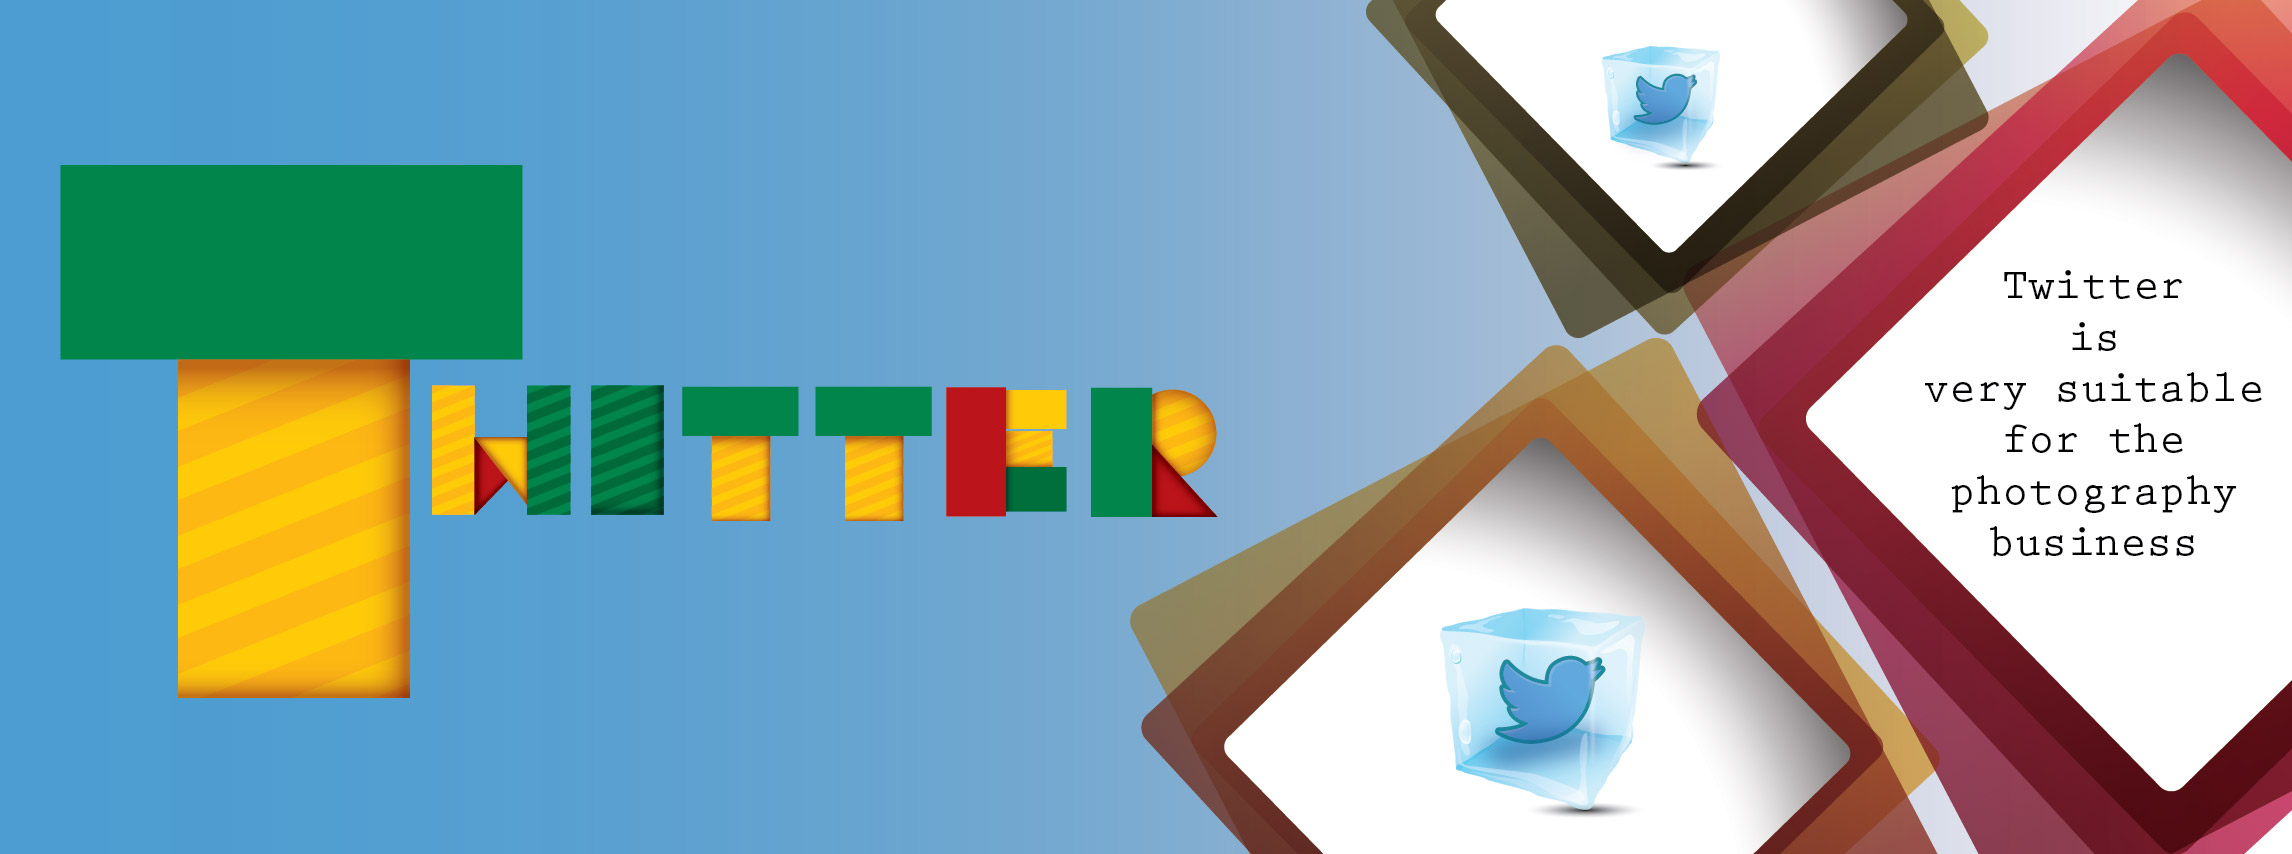 Twitter Marketing For Photography Business